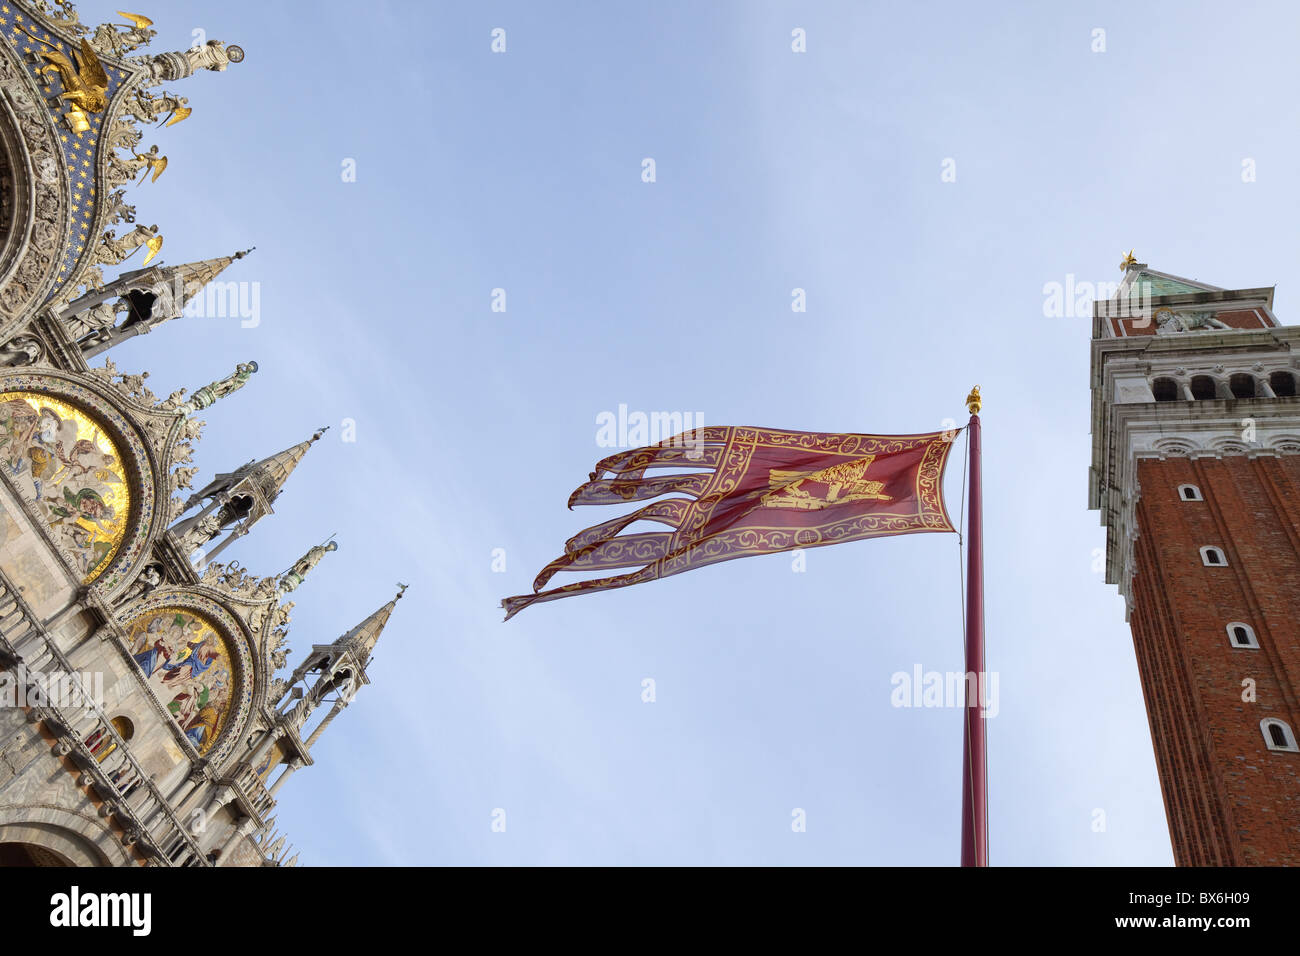 Campanile and Basilica San Marco, St. Mark's Square, with Venetian flag, Venice, UNESCO World Heritage Site, - Stock Image